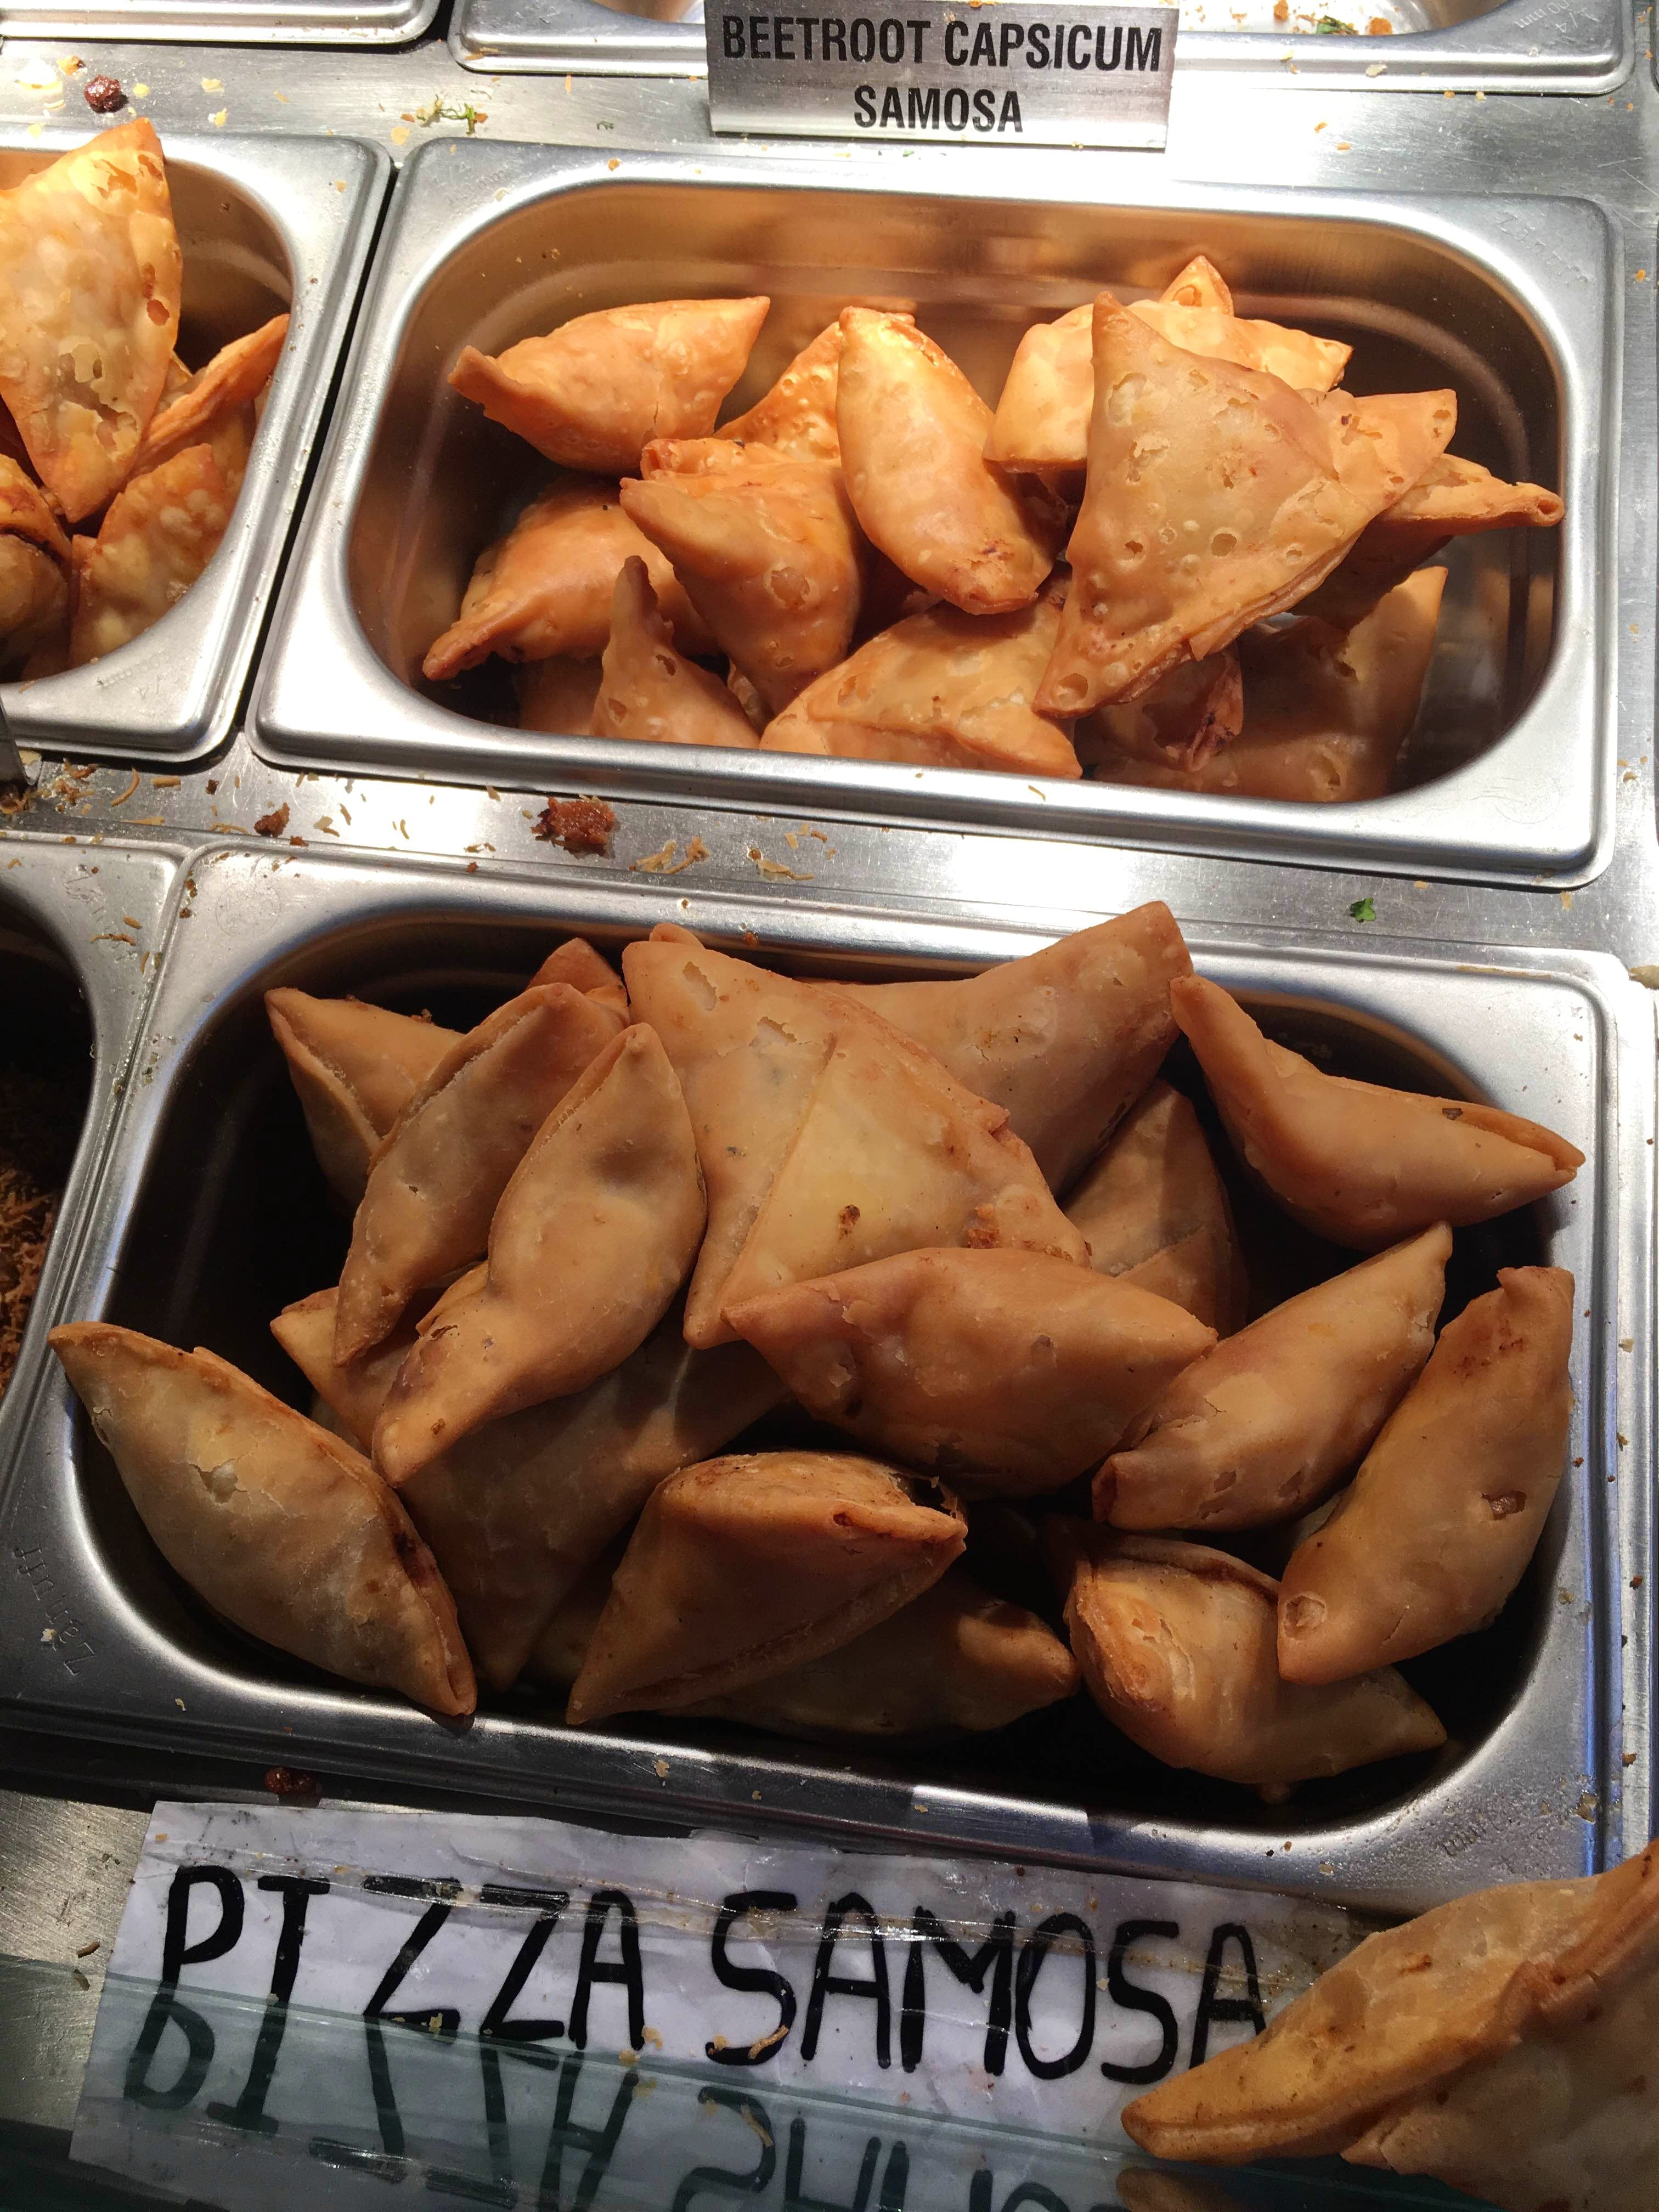 Dish,Food,Cuisine,Fried food,Ingredient,Samosa,Produce,Snack,Deep frying